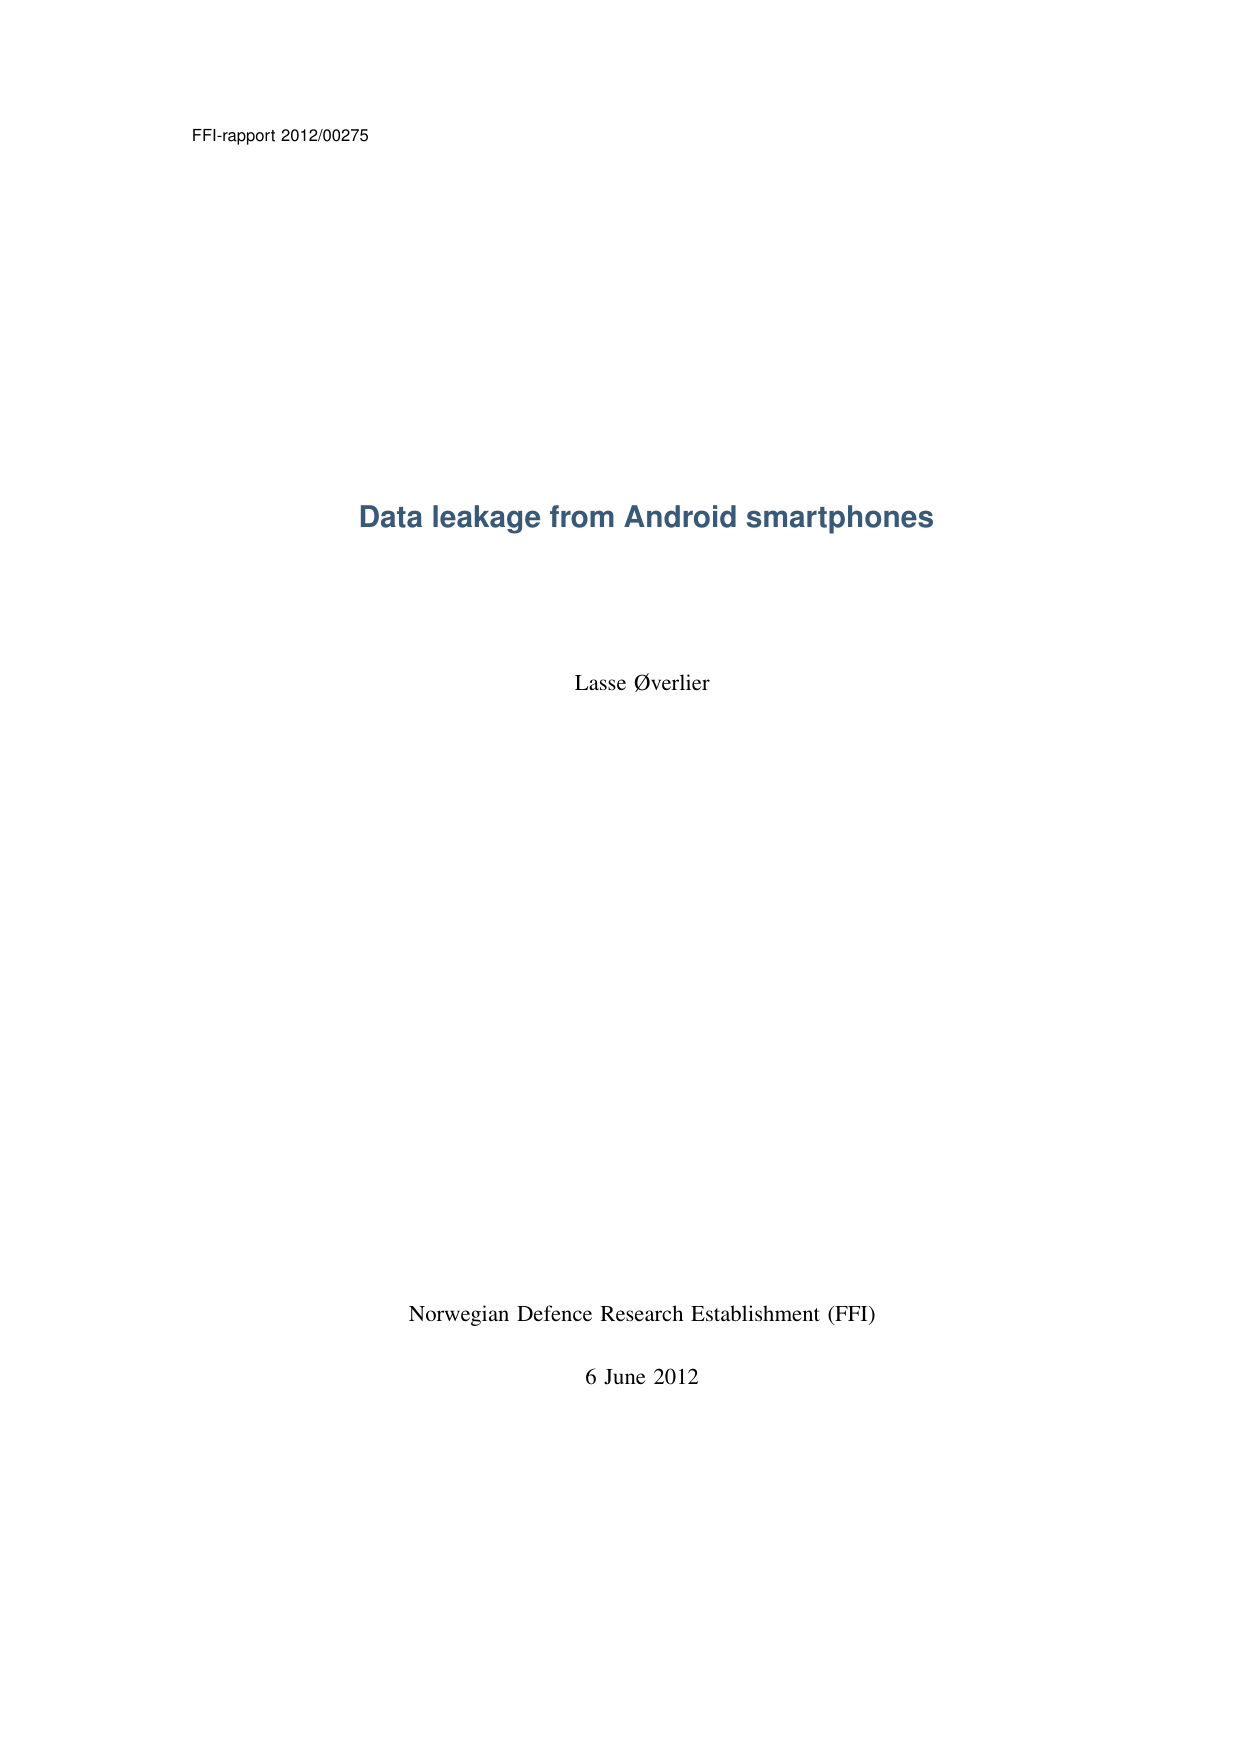 Data leakage from Android smartphones